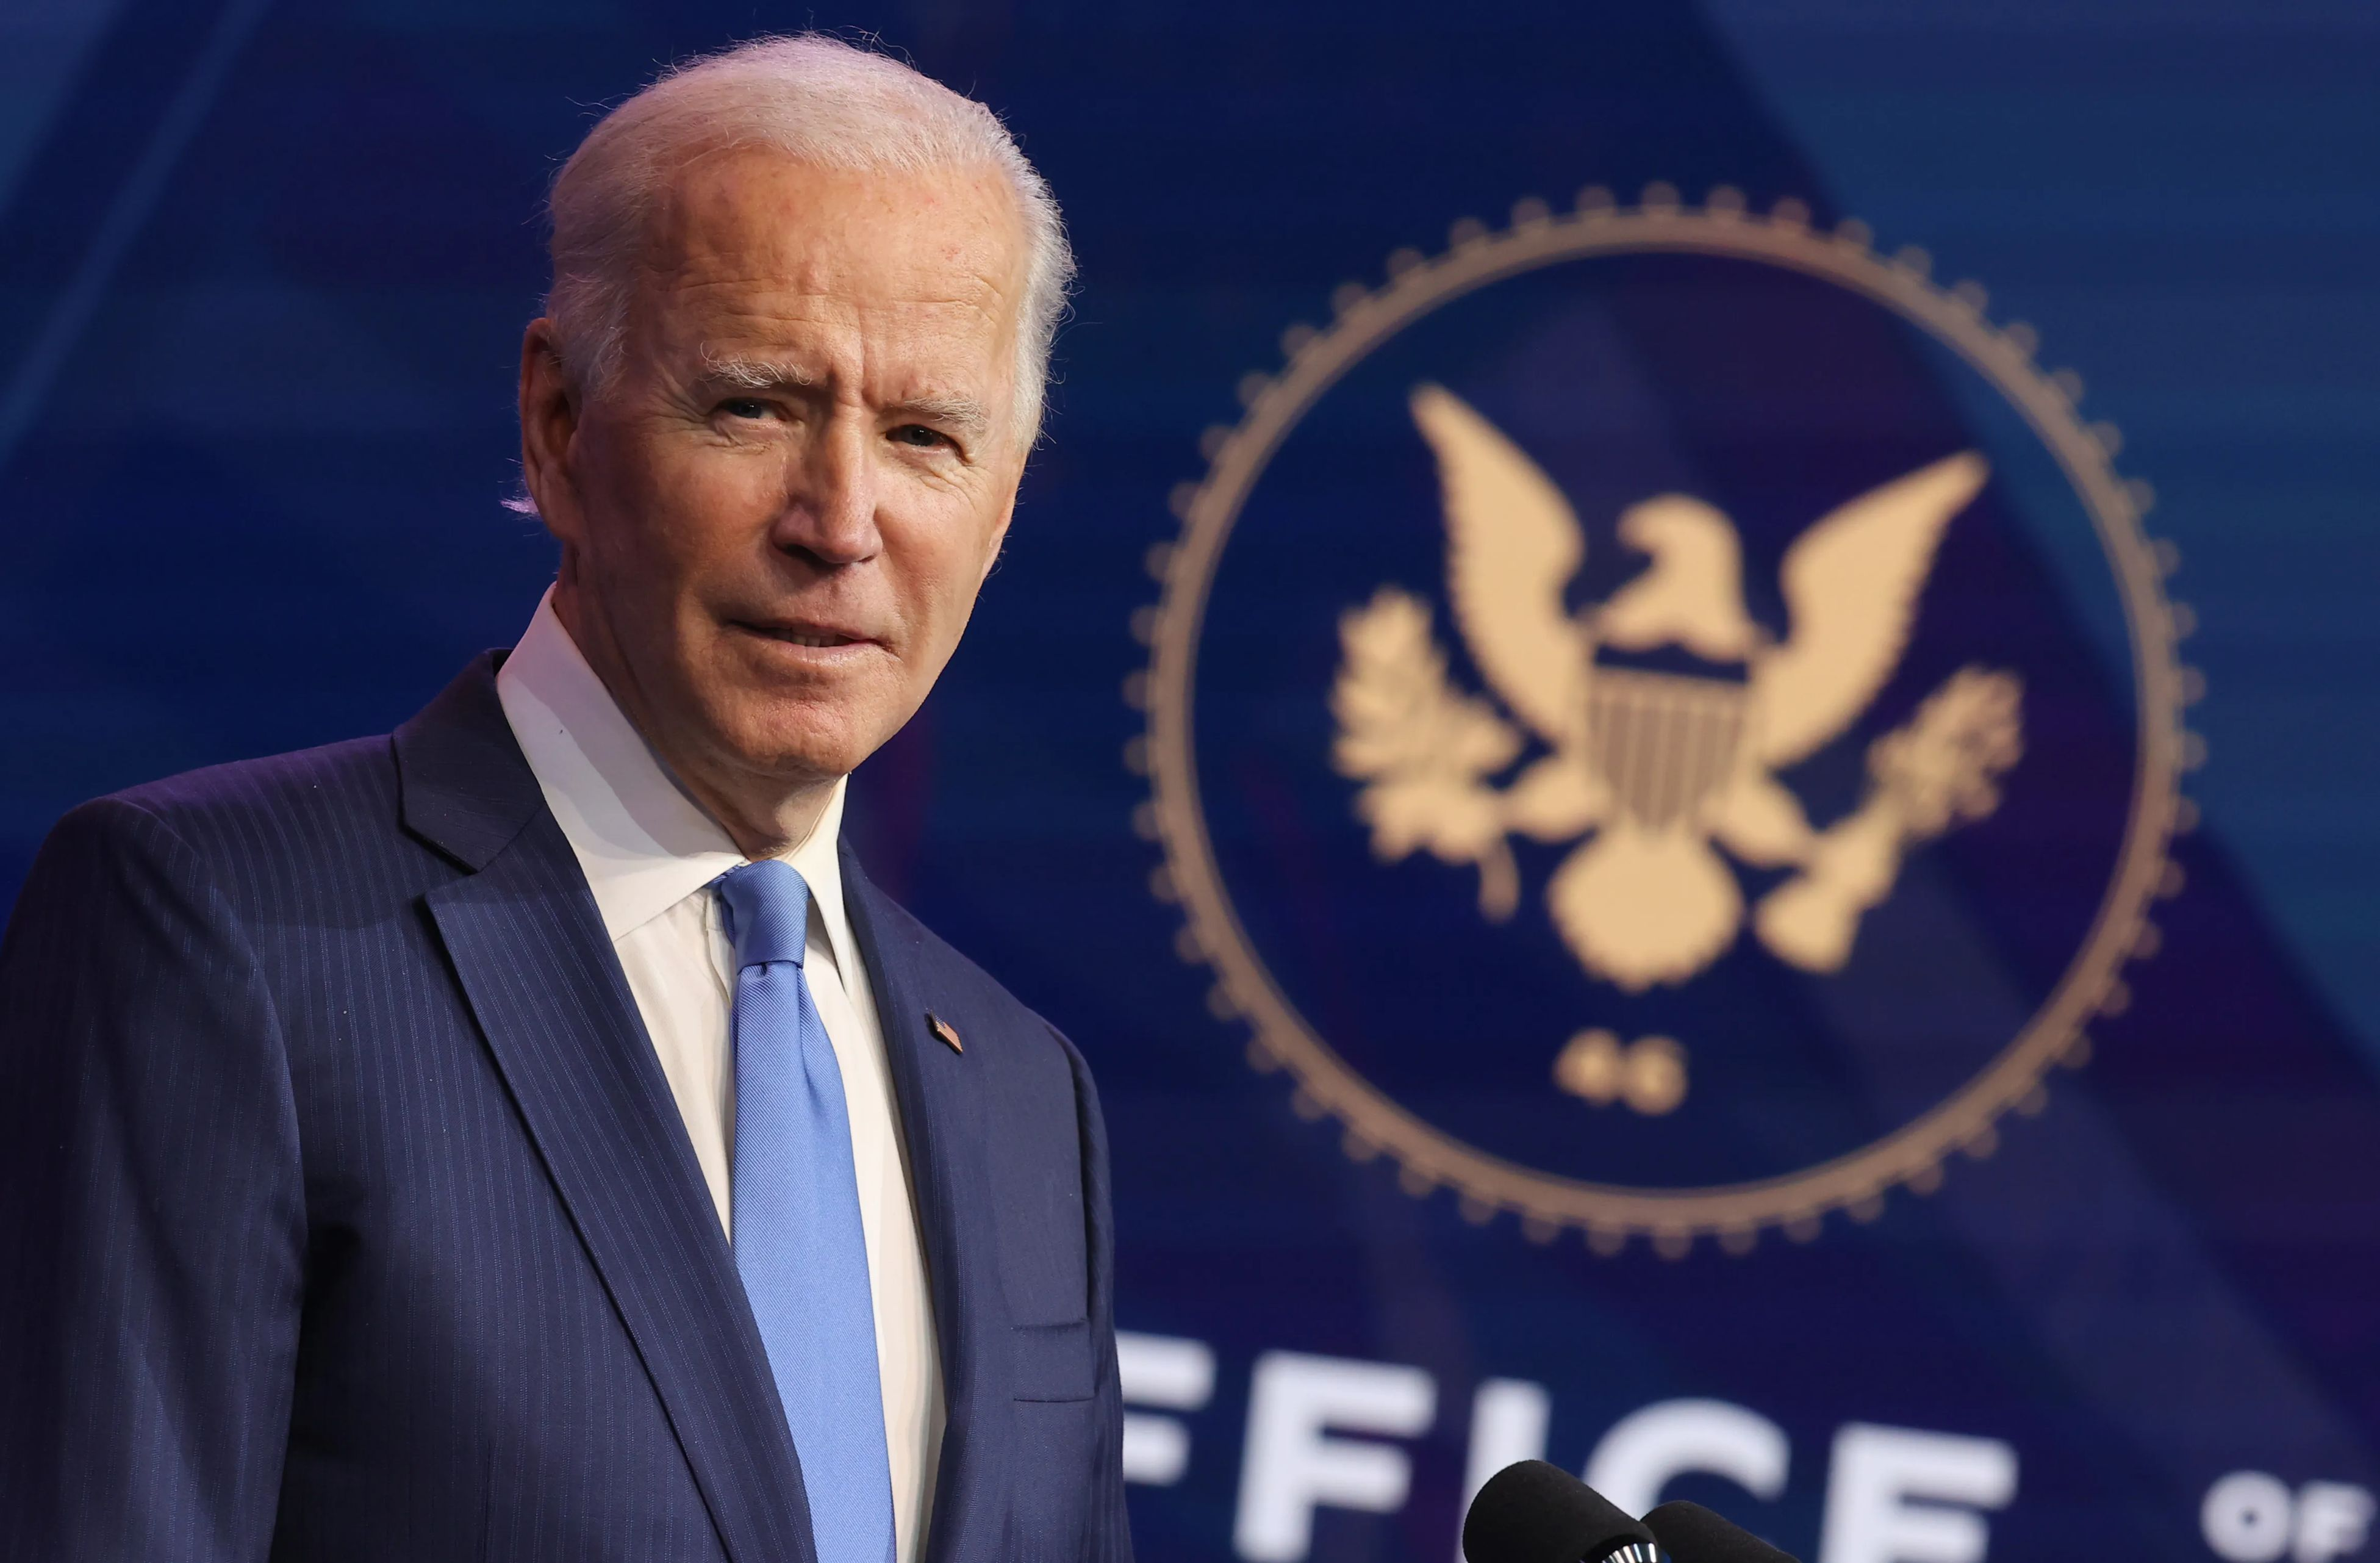 President Joe Biden in front of the Seal of the President of the United States.